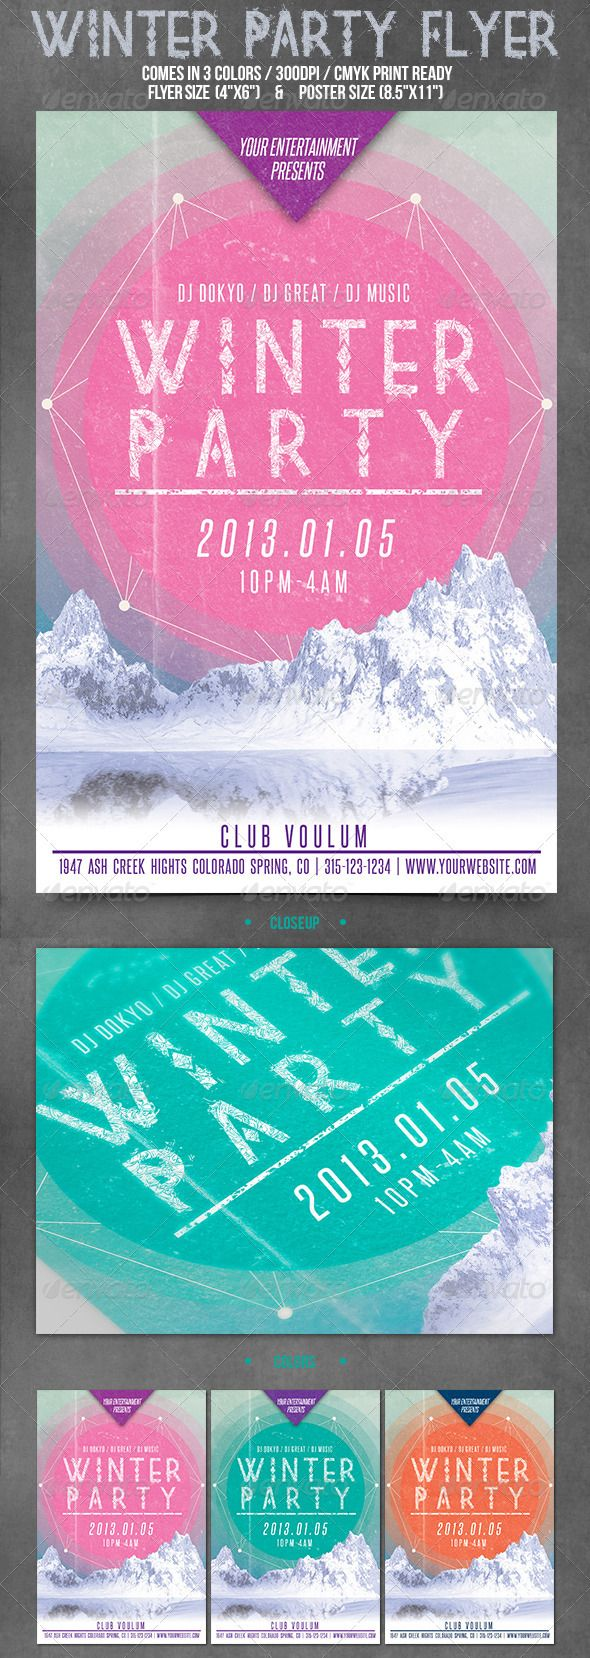 """Winter Party Flyer  #GraphicRiver         • 4""""x6""""(flyer) + 8.5""""x11""""(poster)  • 3 Color Variations  • Bleed and Guides  • CMYK Colors  • 300 DPI / Print Ready  • Layered  • Easy to customize  • Fully editable  • Zip file content: 2 PSD files and the help file.  • Fonts used are free       Created: 9January13 GraphicsFilesIncluded: PhotoshopPSD Layered: Yes MinimumAdobeCSVersion: CS3 PrintDimensions: 4x6 Tags: bash #blue #cold"""